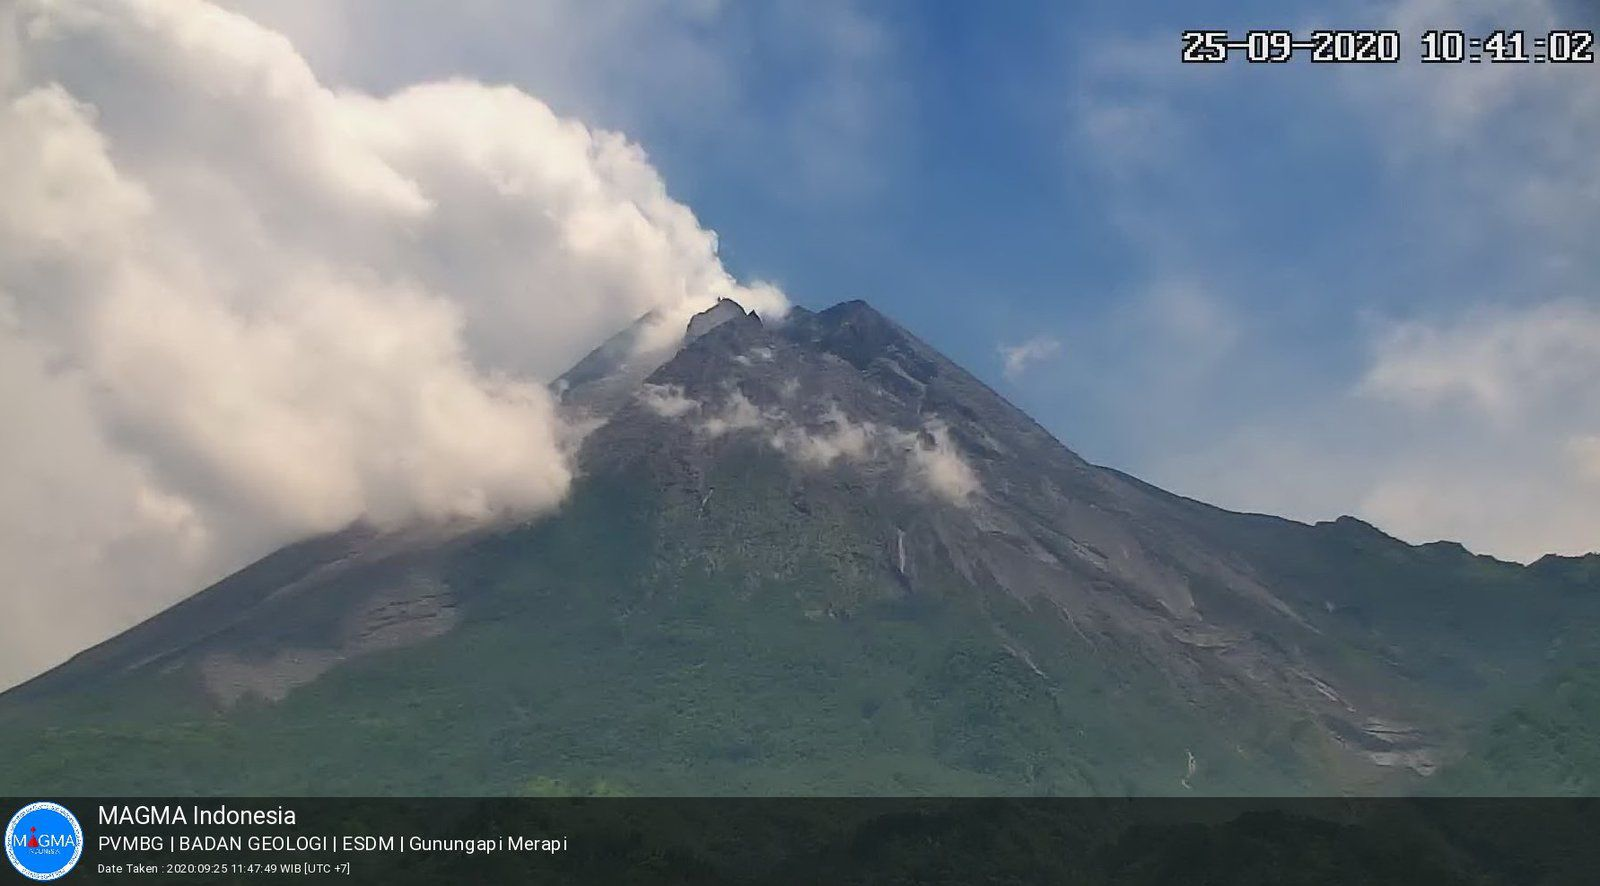 Merapi - Degassing on 09/25/2020 / 10:41 am - photo Magma indonesia